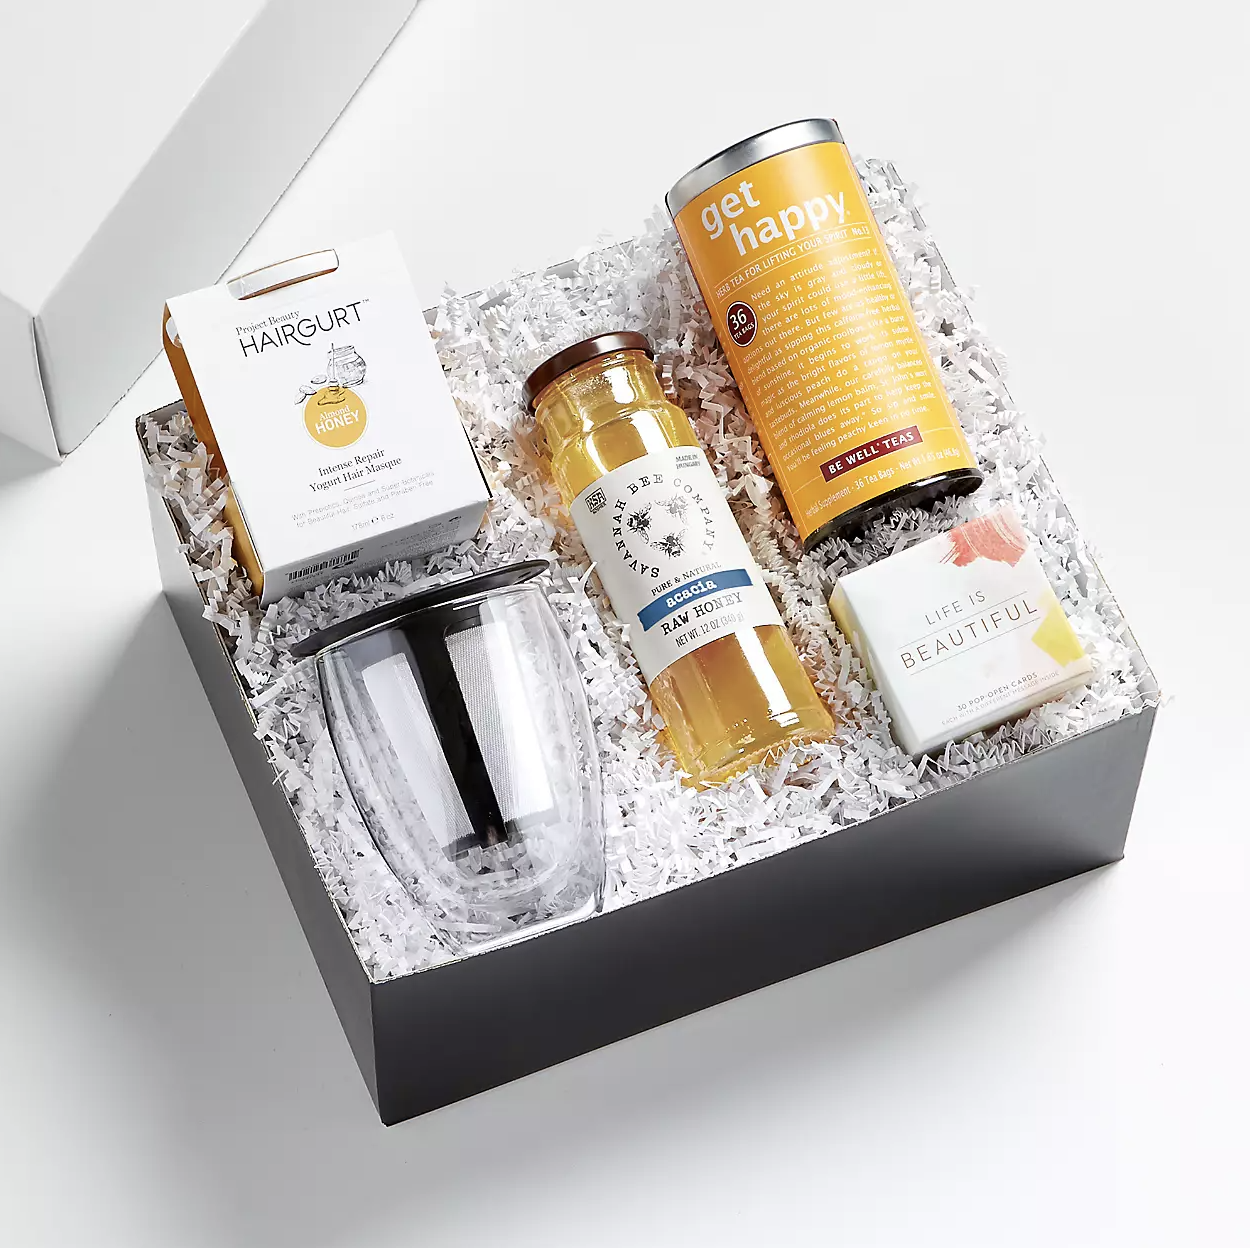 Refresh Gift Set - a gift box is filled with loose-leaf tea, a tea-straining mug, and other accessories for a tea-related gift